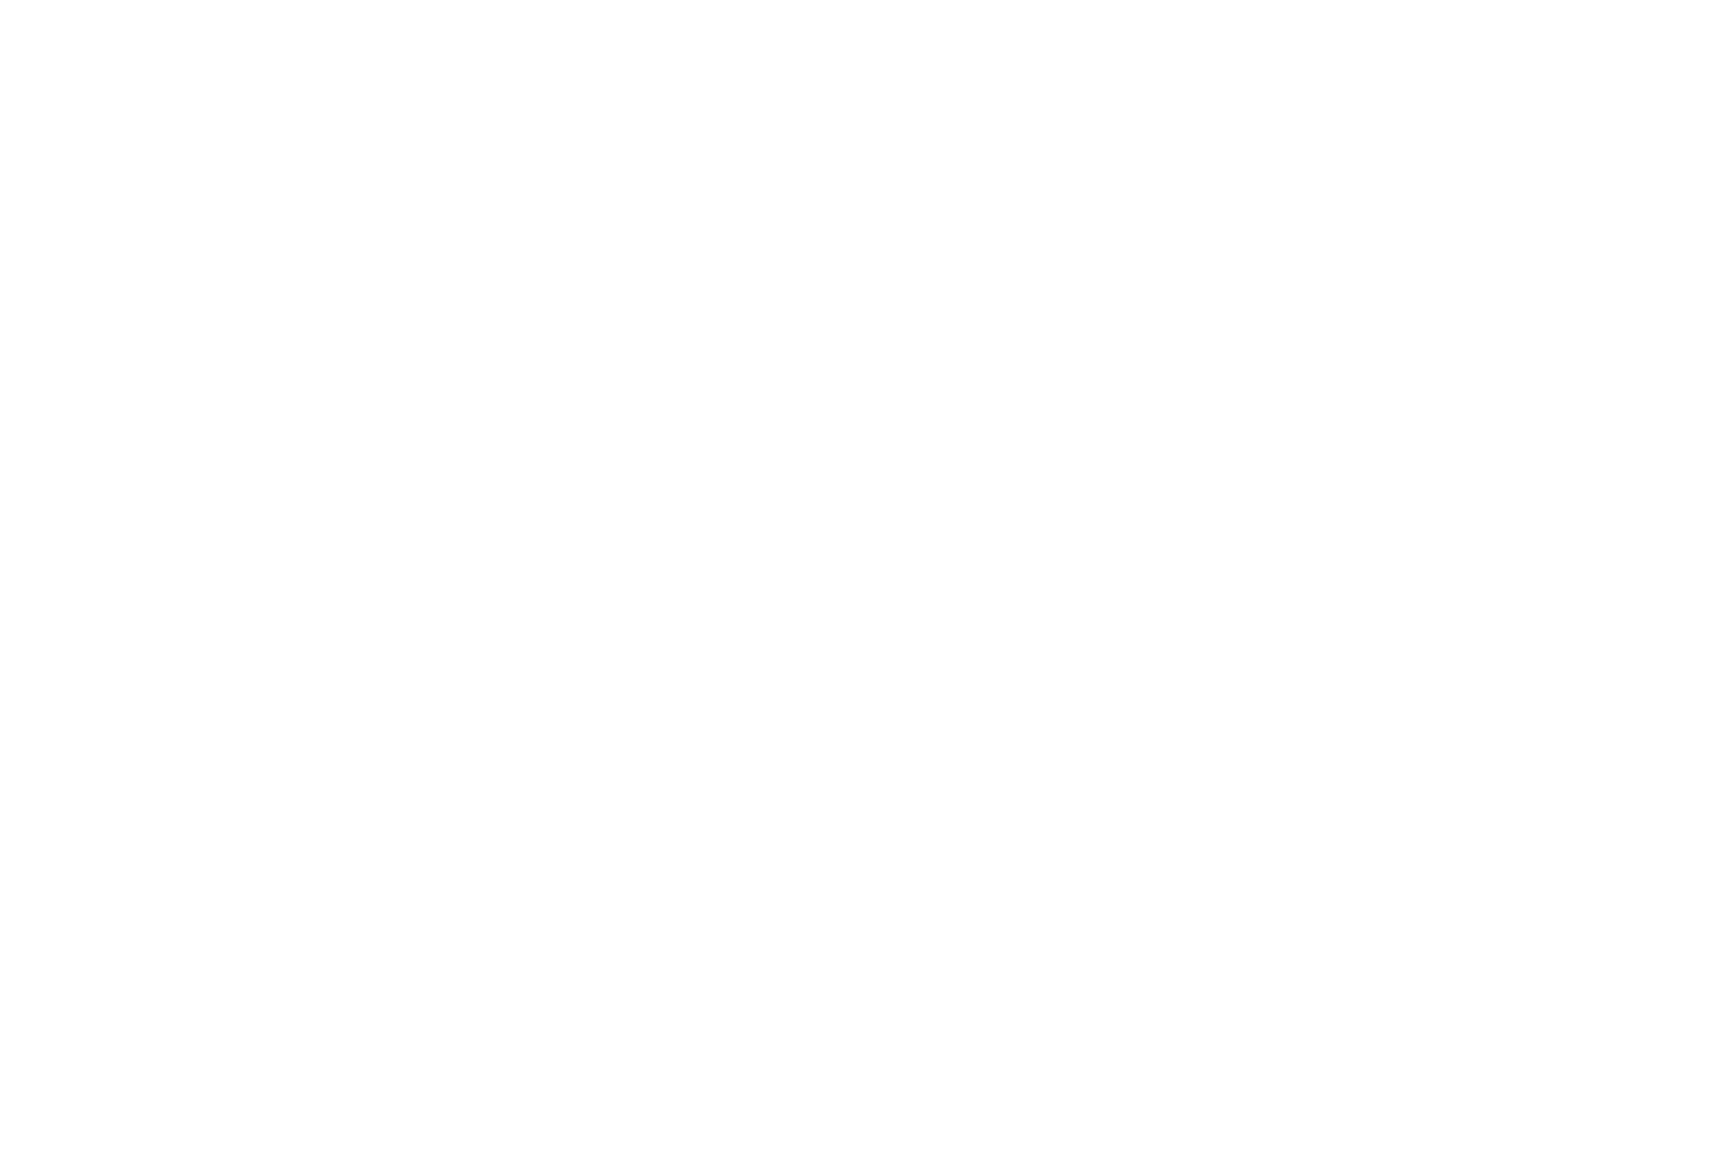 Best Western Short Nomination - Bare Bones International Film and Music Festival - 2018.png